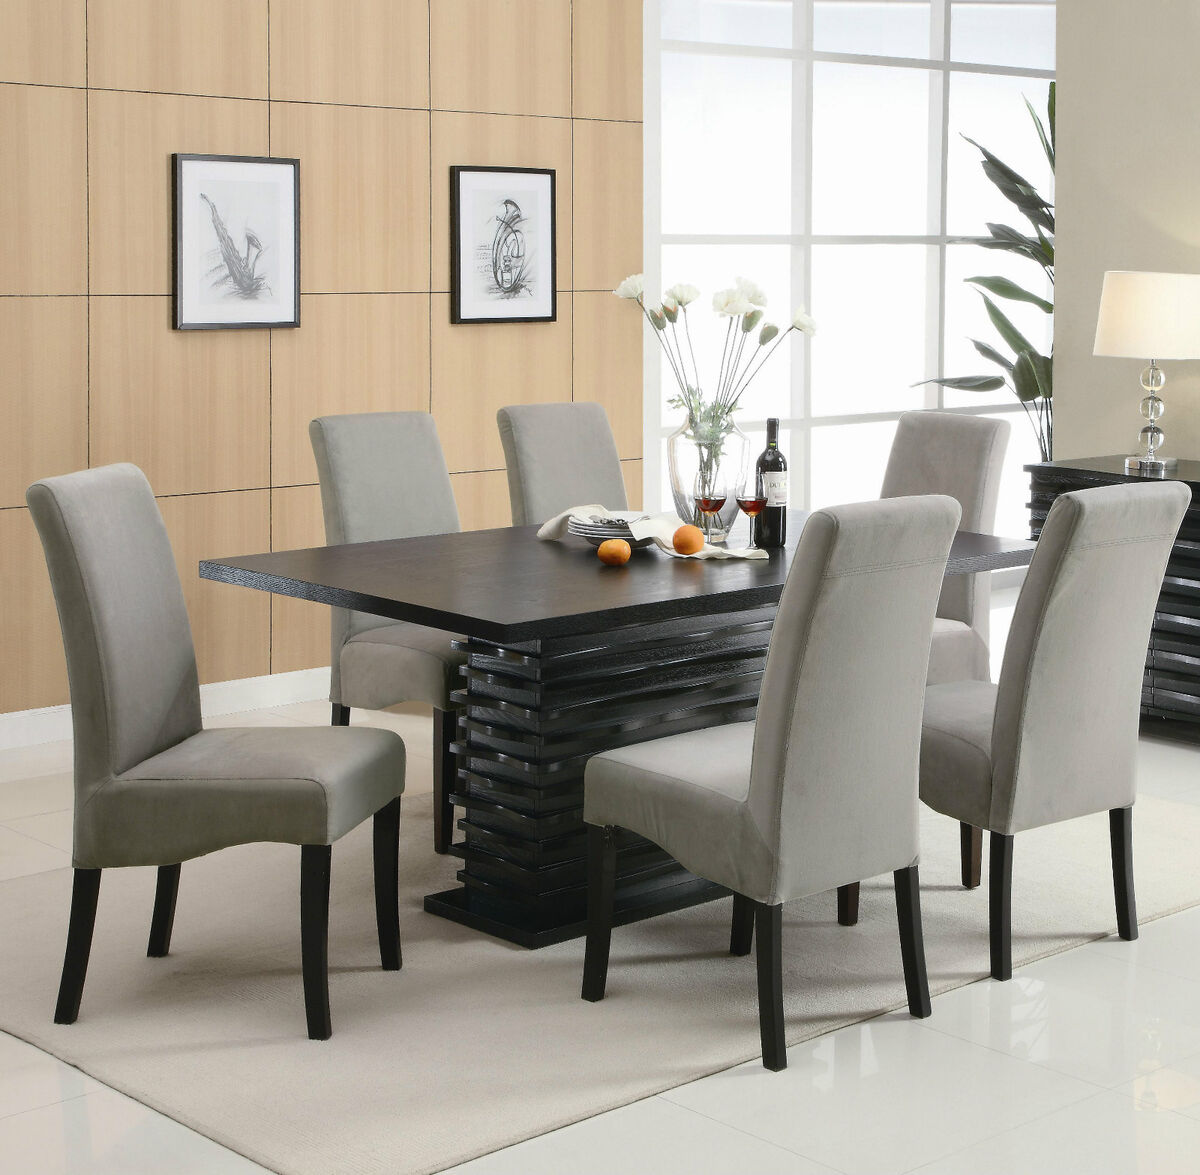 Designer Dining Table And Chairs Dining Table Furniture Contemporary Dining Table Chairs